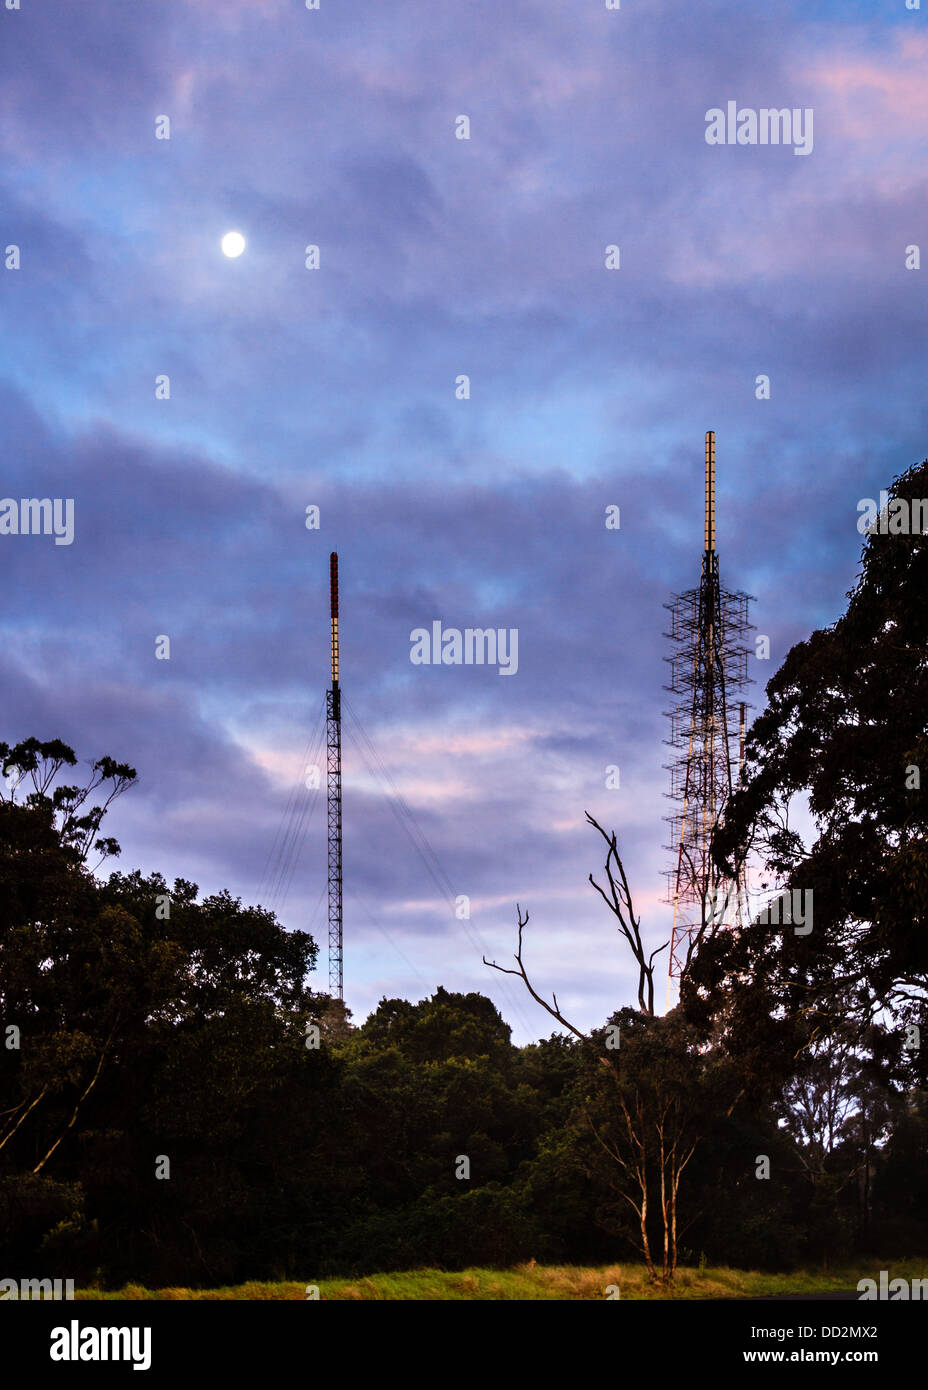 Mobile or cell phone masts in the Australian bush, under a full moon and a pink and purple twilight sky. Technology - Stock Image